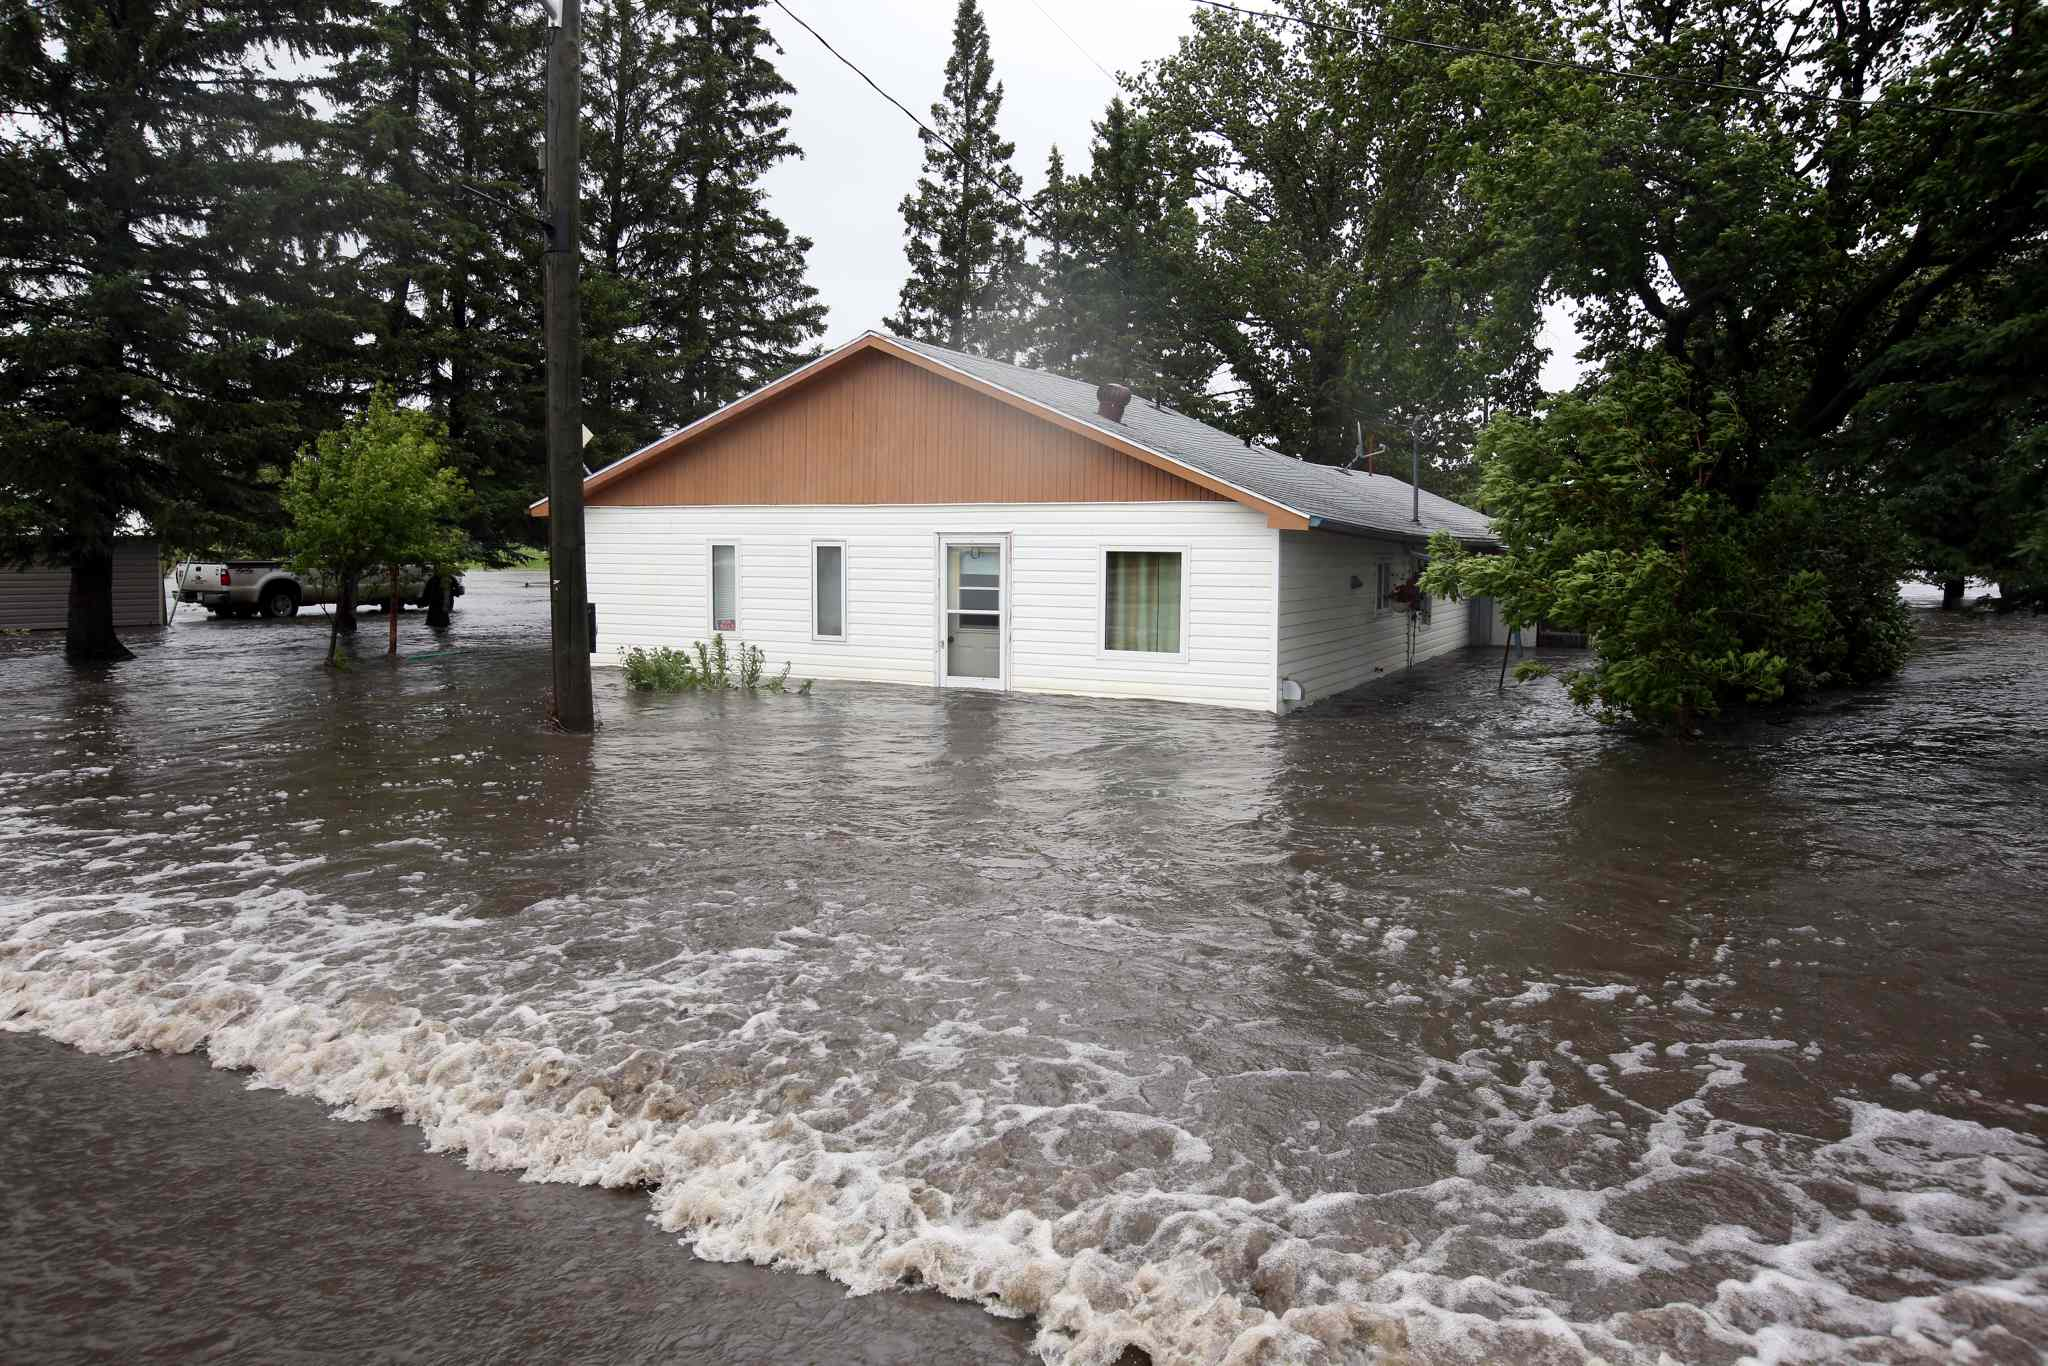 Water pours over Highway 256 and floods homes in the village of Cromer.